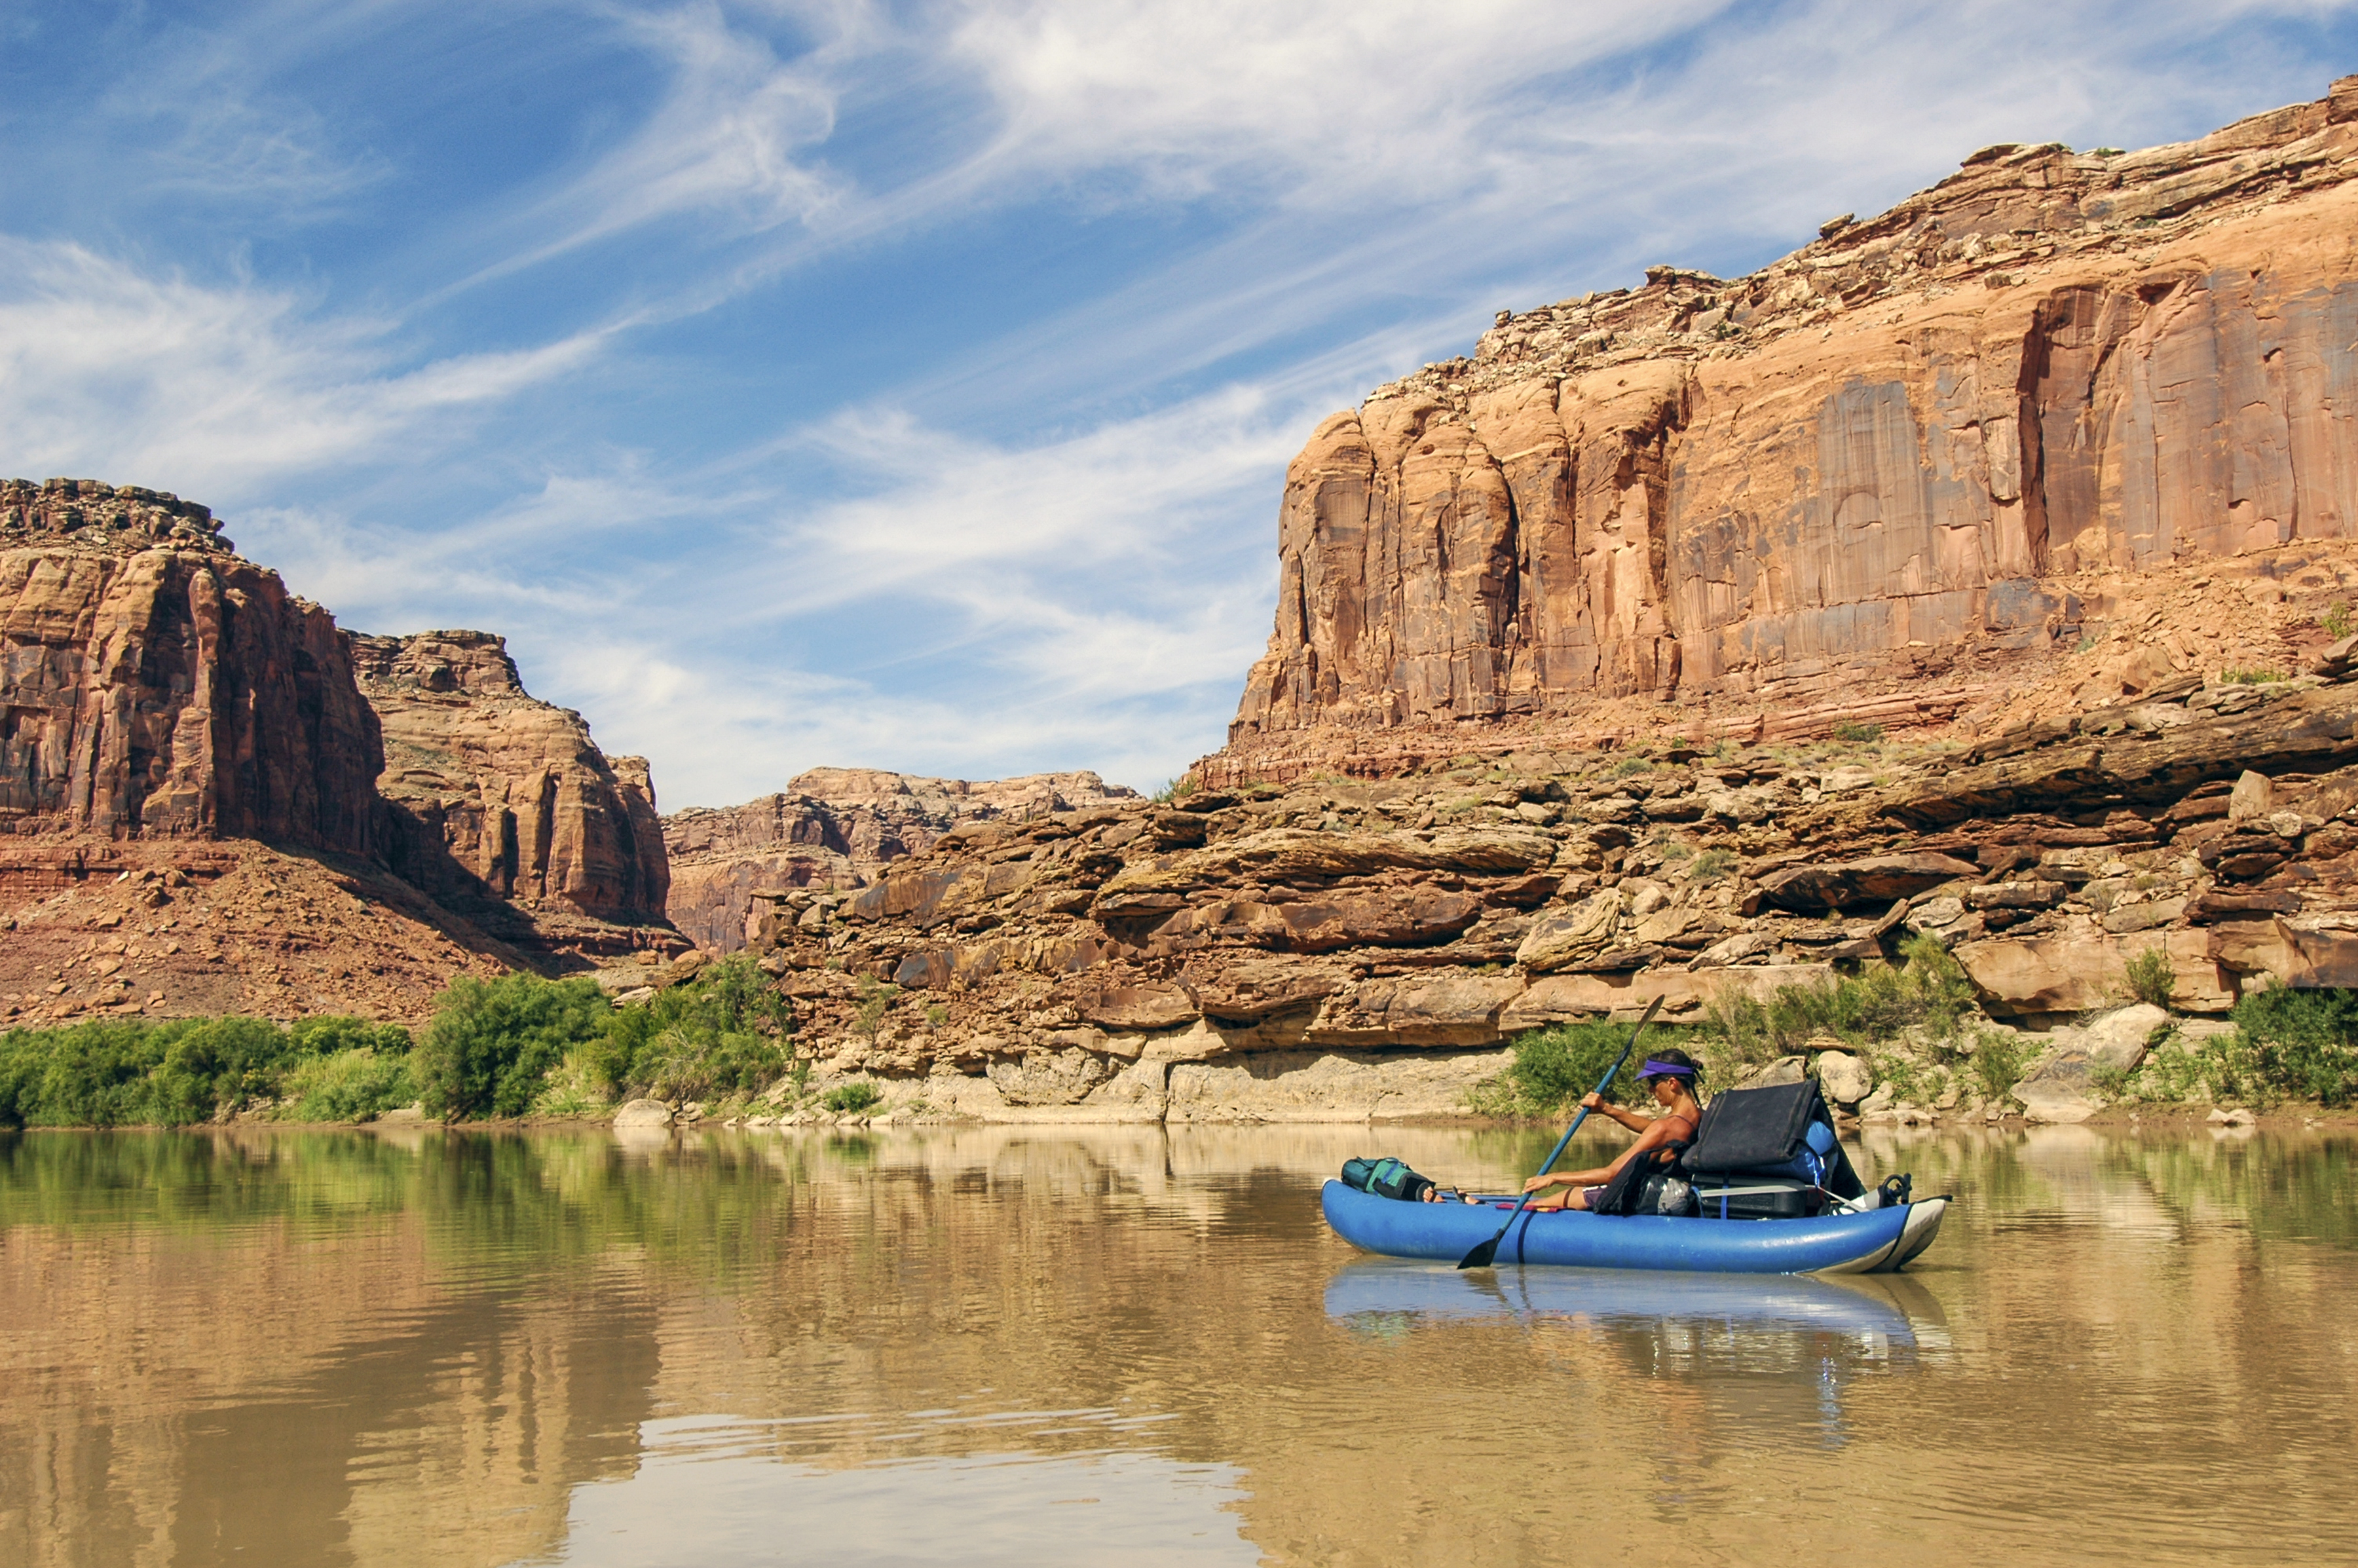 Leisurely kayak on a river lined with sheer rock faces.